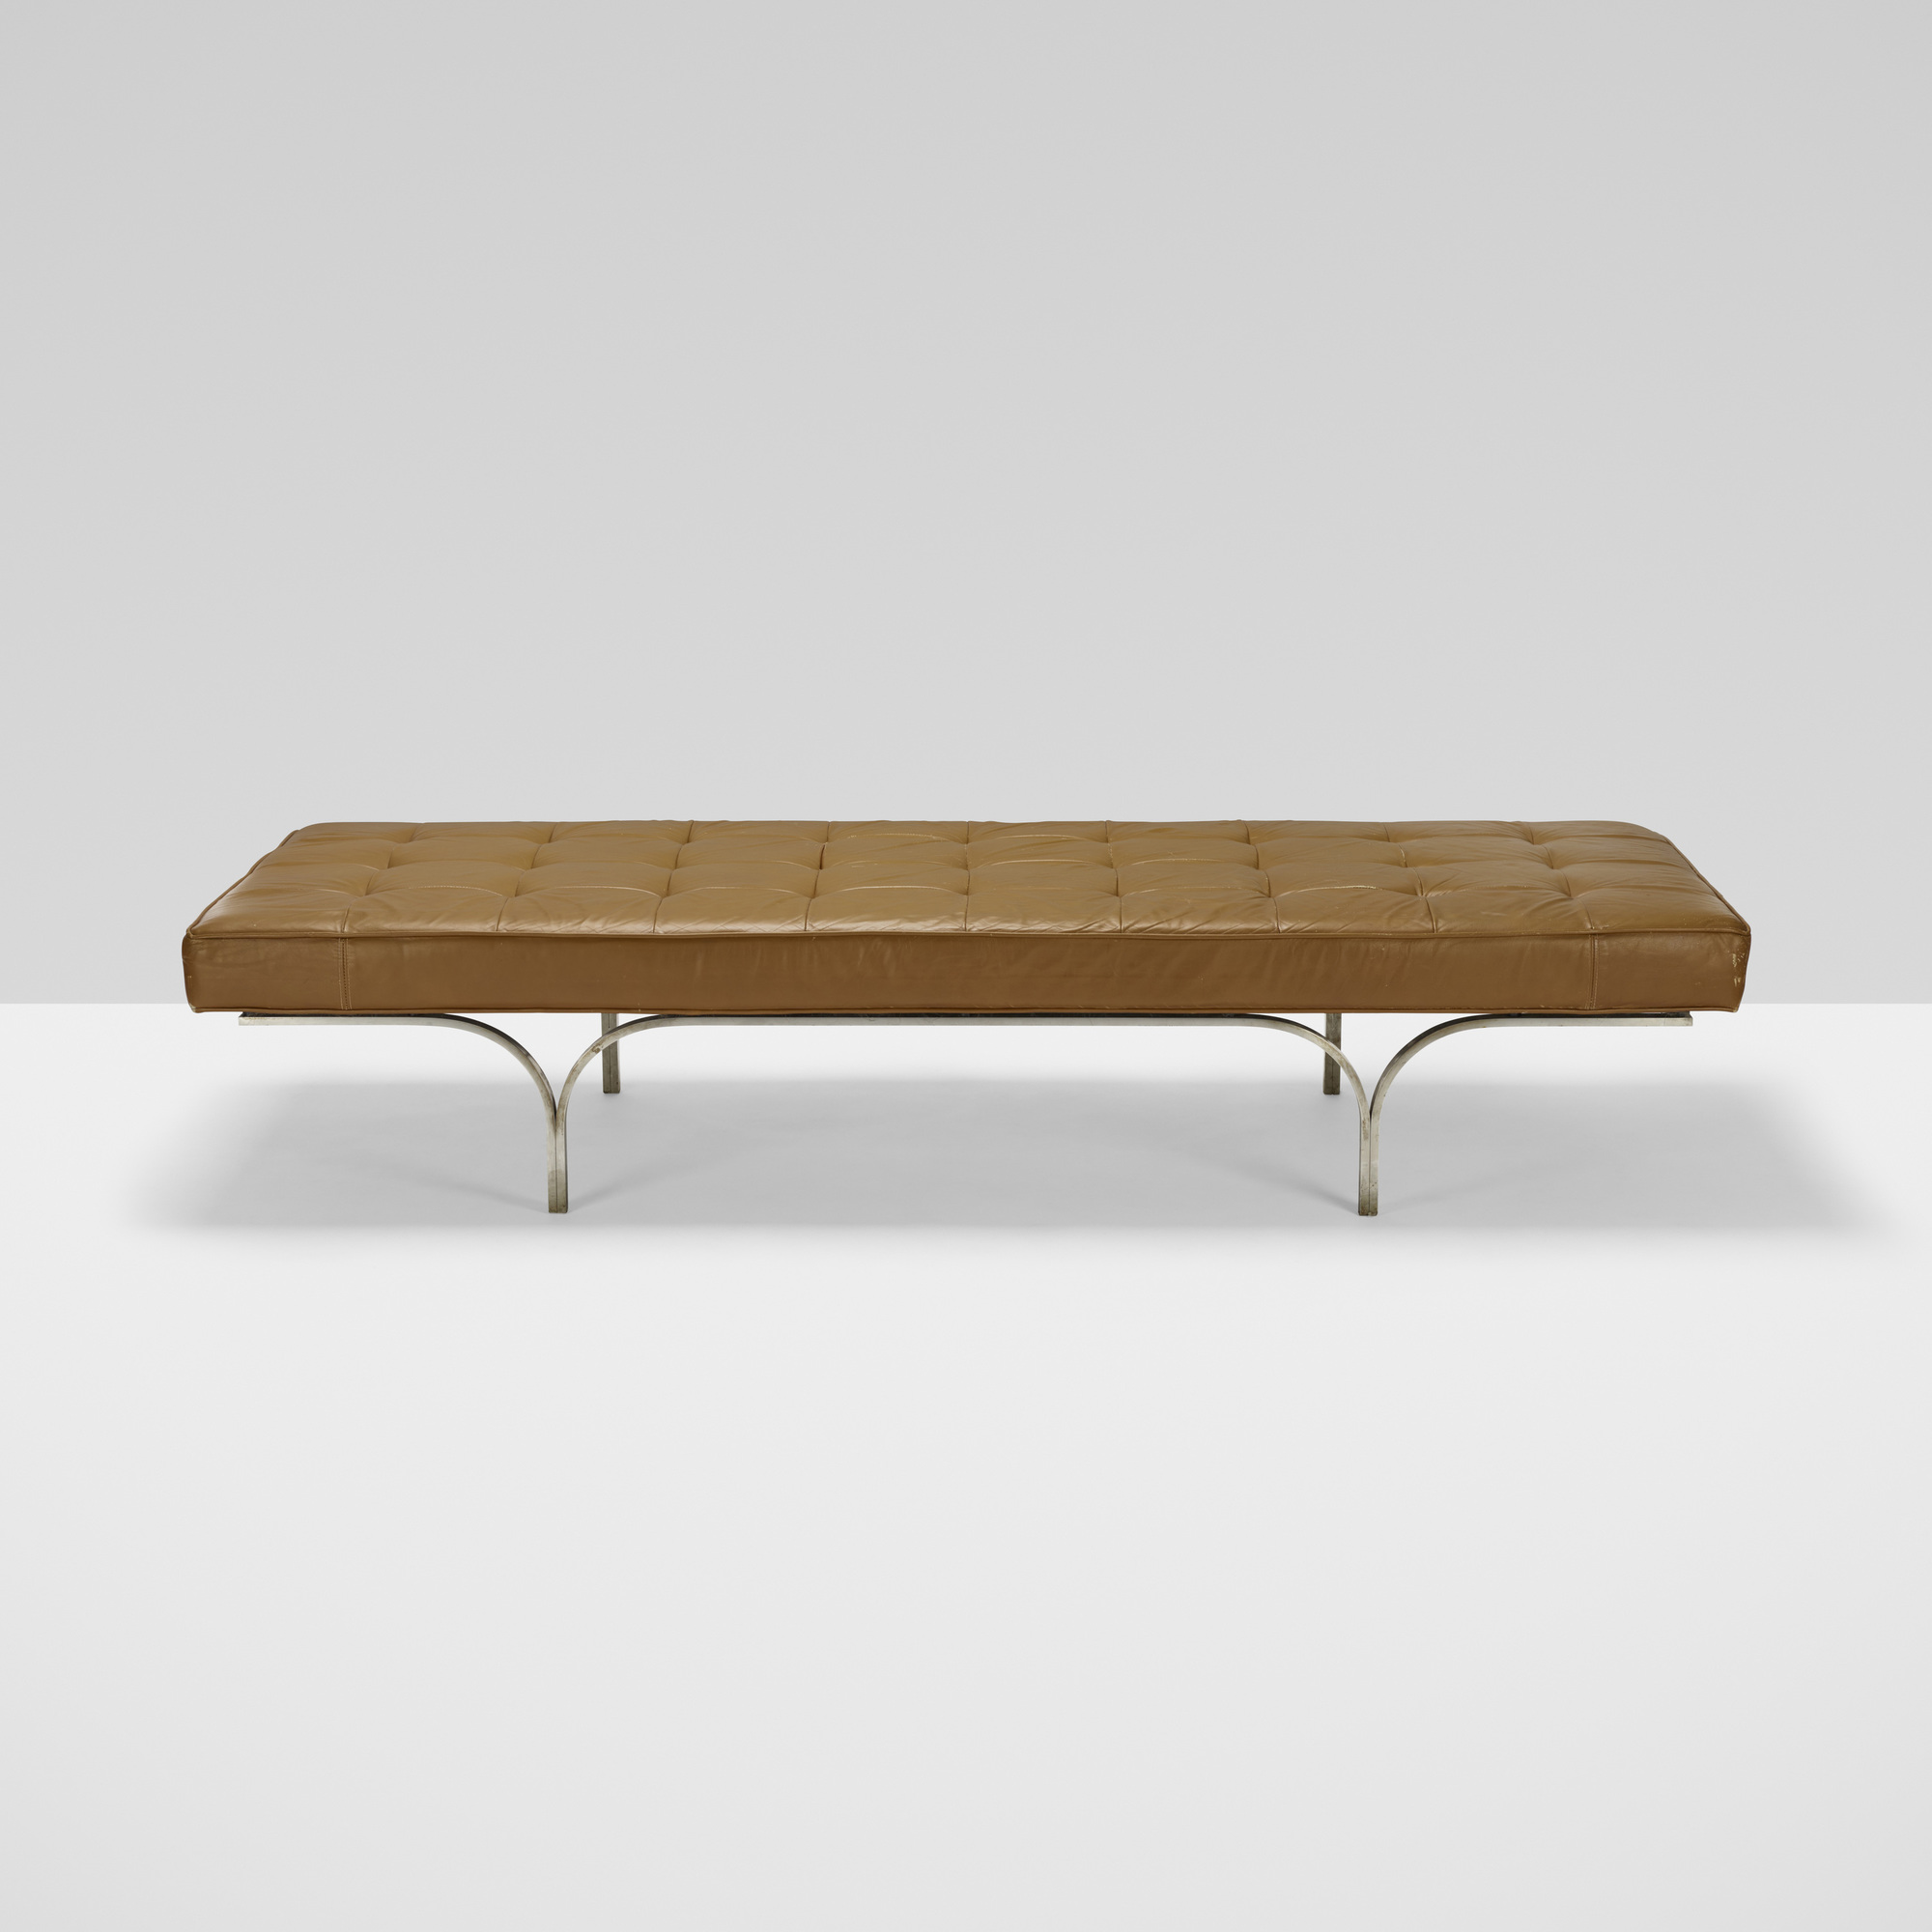 349: Erwine and Estelle Laverne / Philharmonic bench (2 of 3)